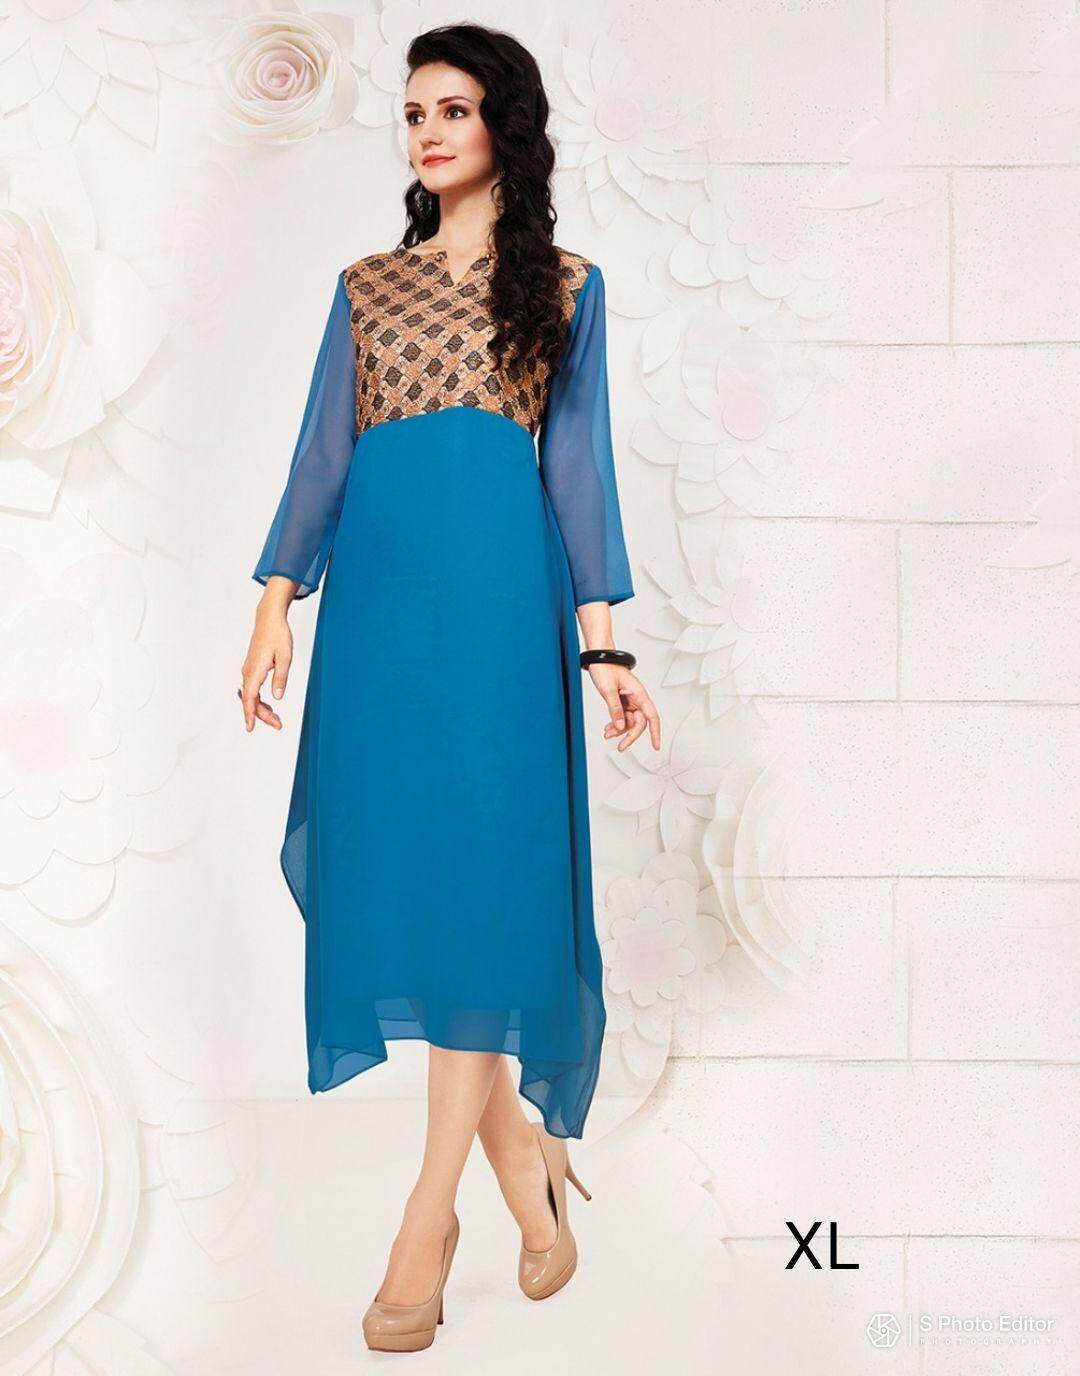 Ethnic Wear Kurtis Online With Best Price At Lazada Malaysia